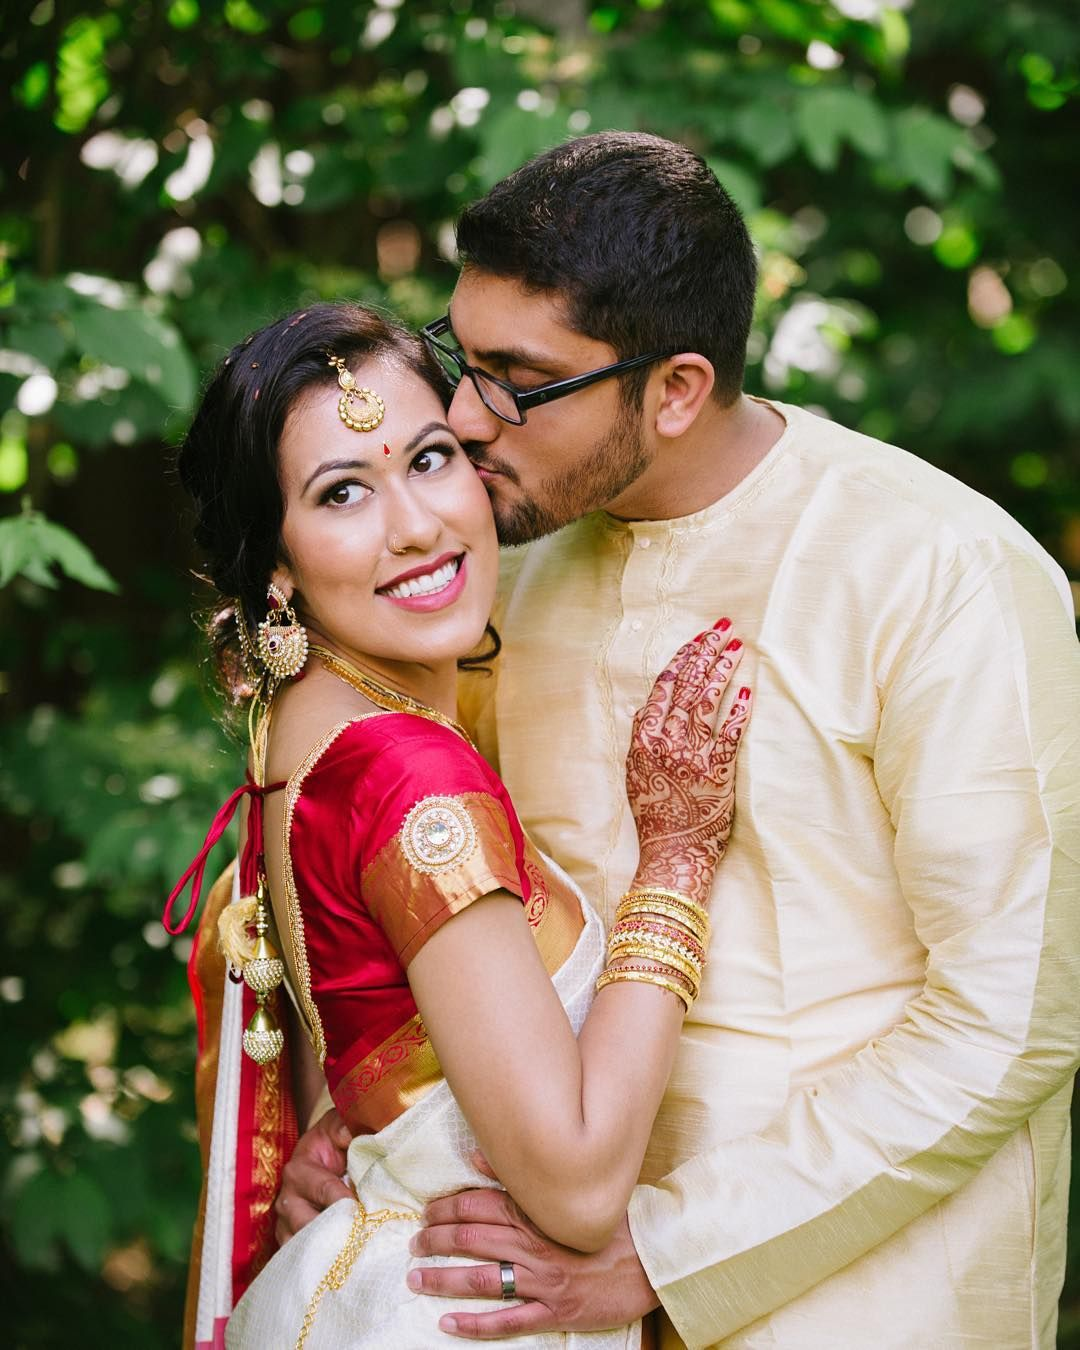 Shwetha Adip S Wedding Shot By Nina Is Featured On The Blog Today Pishiwedding In 2020 Couple Photos Wedding Photo